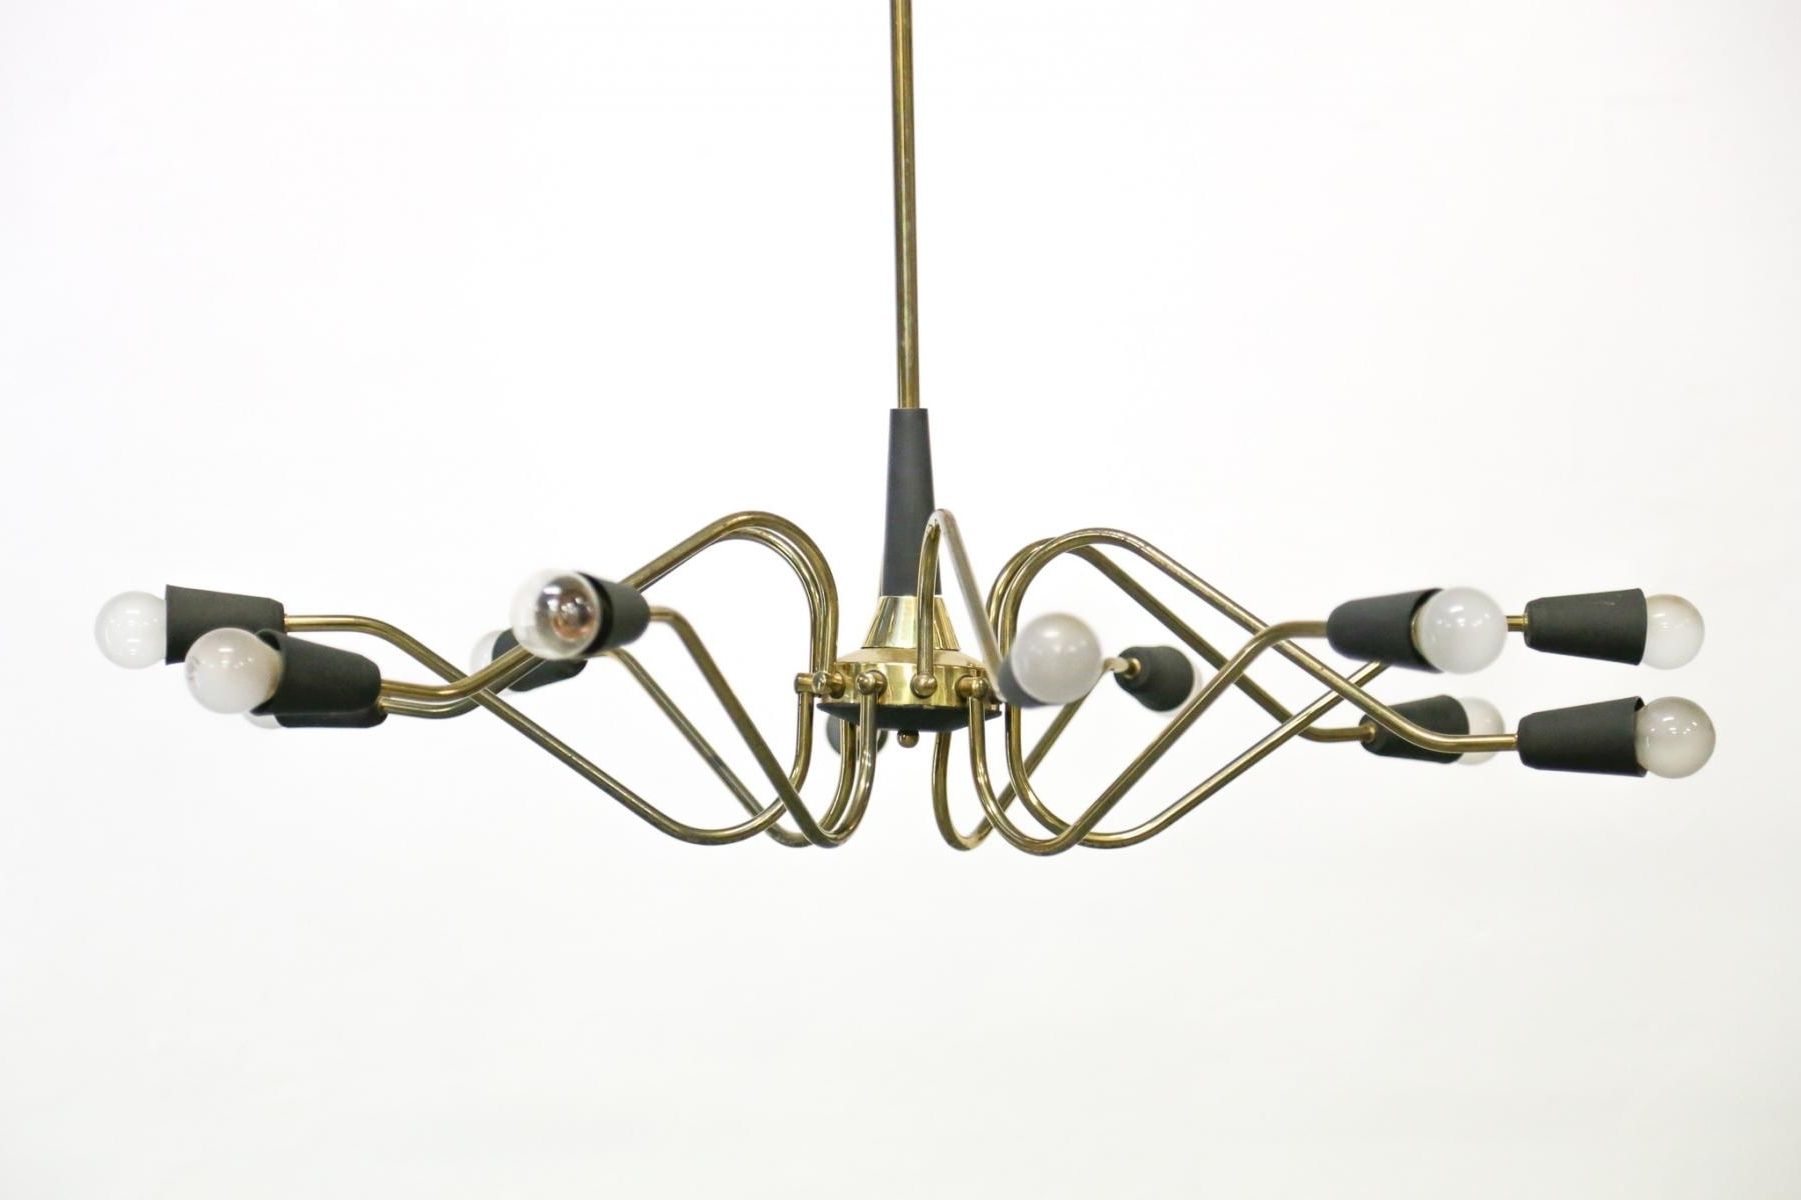 Vintage Italian Chandelier From Stilnovo For Sale At Pamono In Most Up To Date Vintage Italian Chandelier (View 6 of 15)